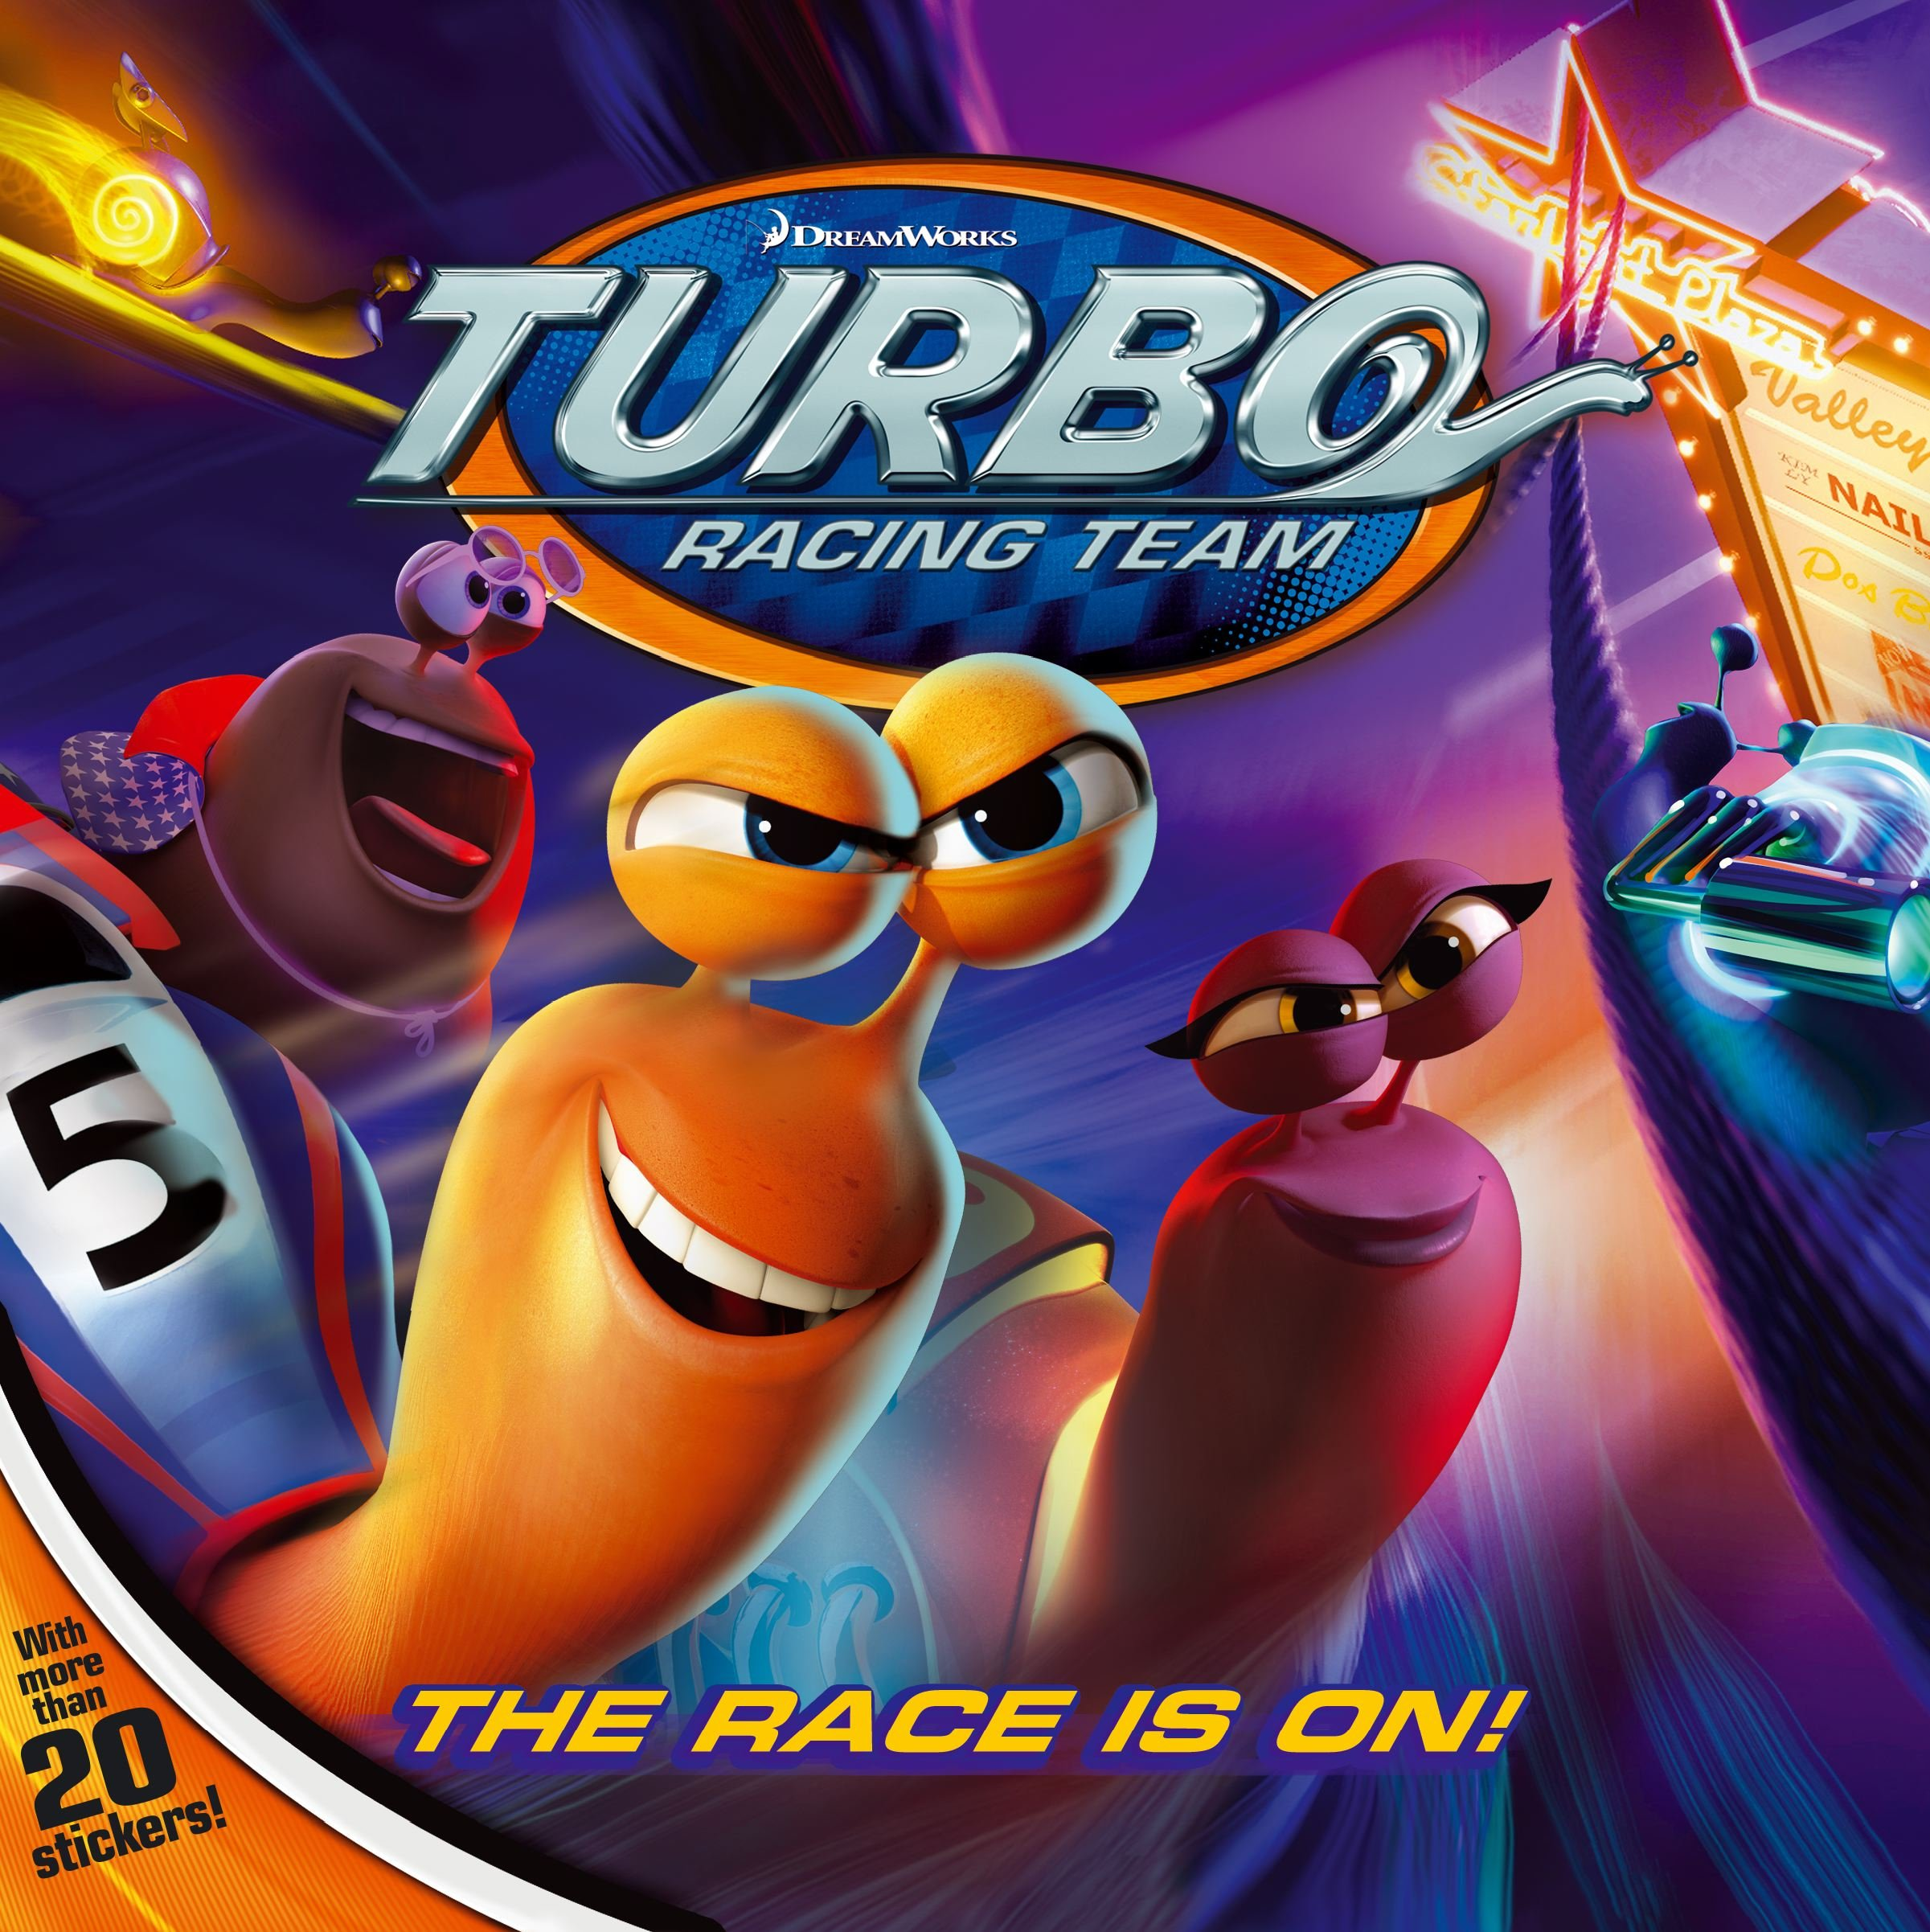 The Race Is On! (Turbo) Paperback – June 11, 2013